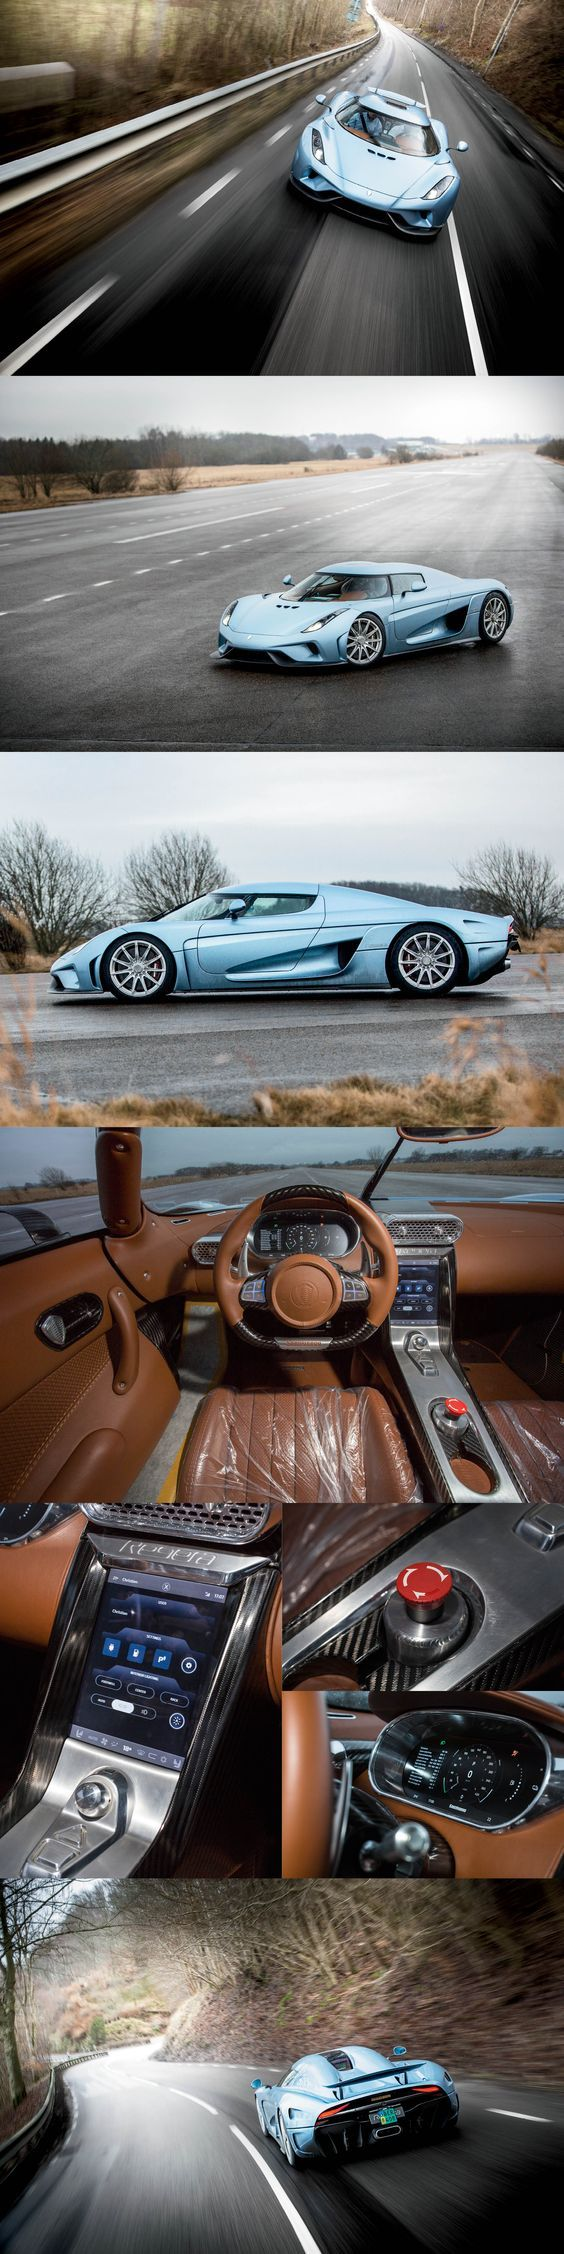 MUST SEE What A Pretty Site To See ''2017 Koenigsegg Regera Prototype'' Here are the hottest new cars, trucks, sports cars, muscle cars, crossovers, SUVs, vans, and everything in between set to go on sale within the next few years. Find out what's coming